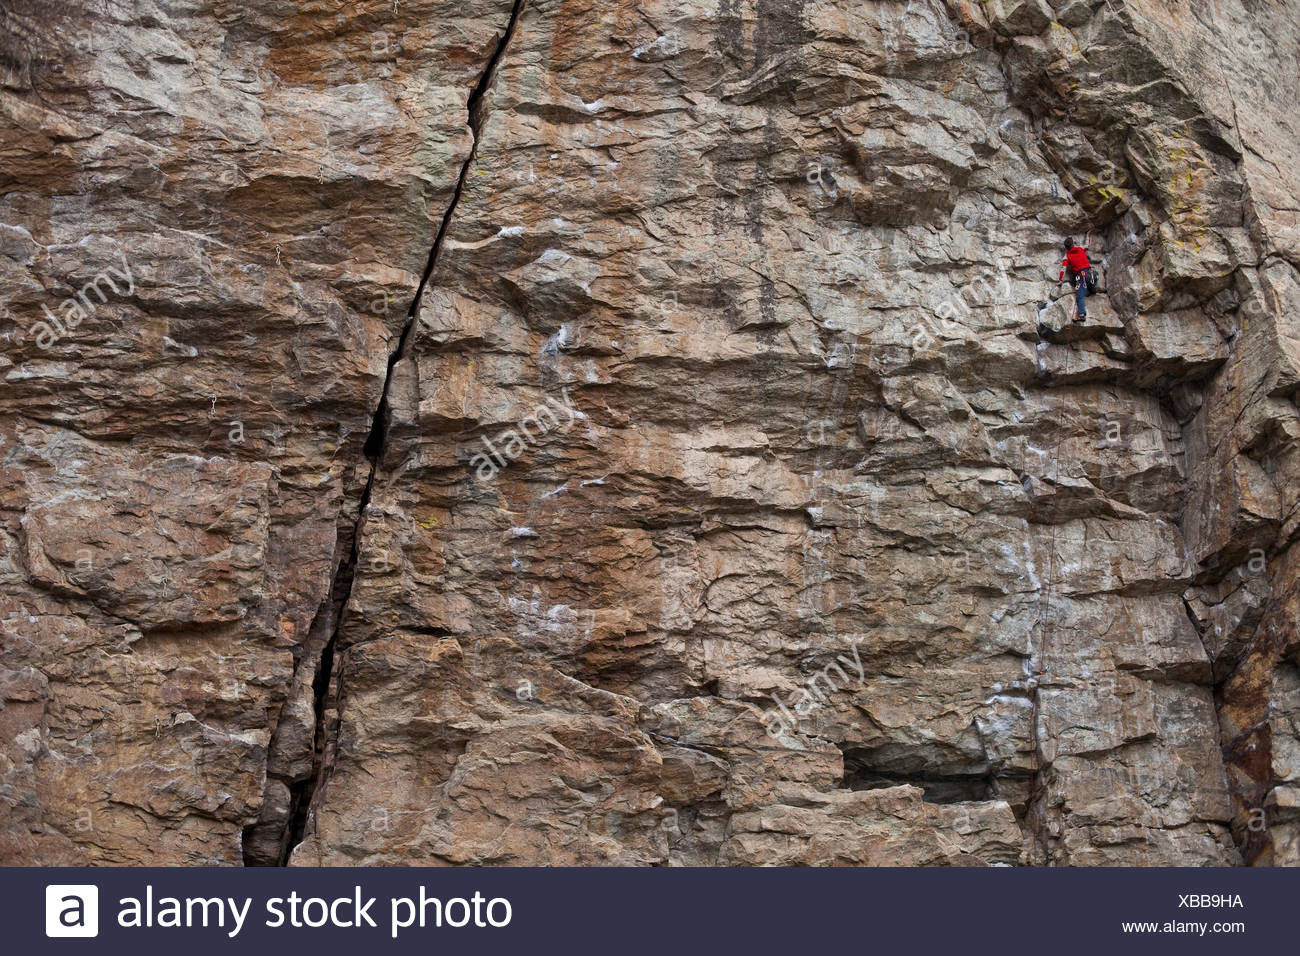 A male sport climber ascends Grin & Bear it 11b, Skaha, BC - Stock Image